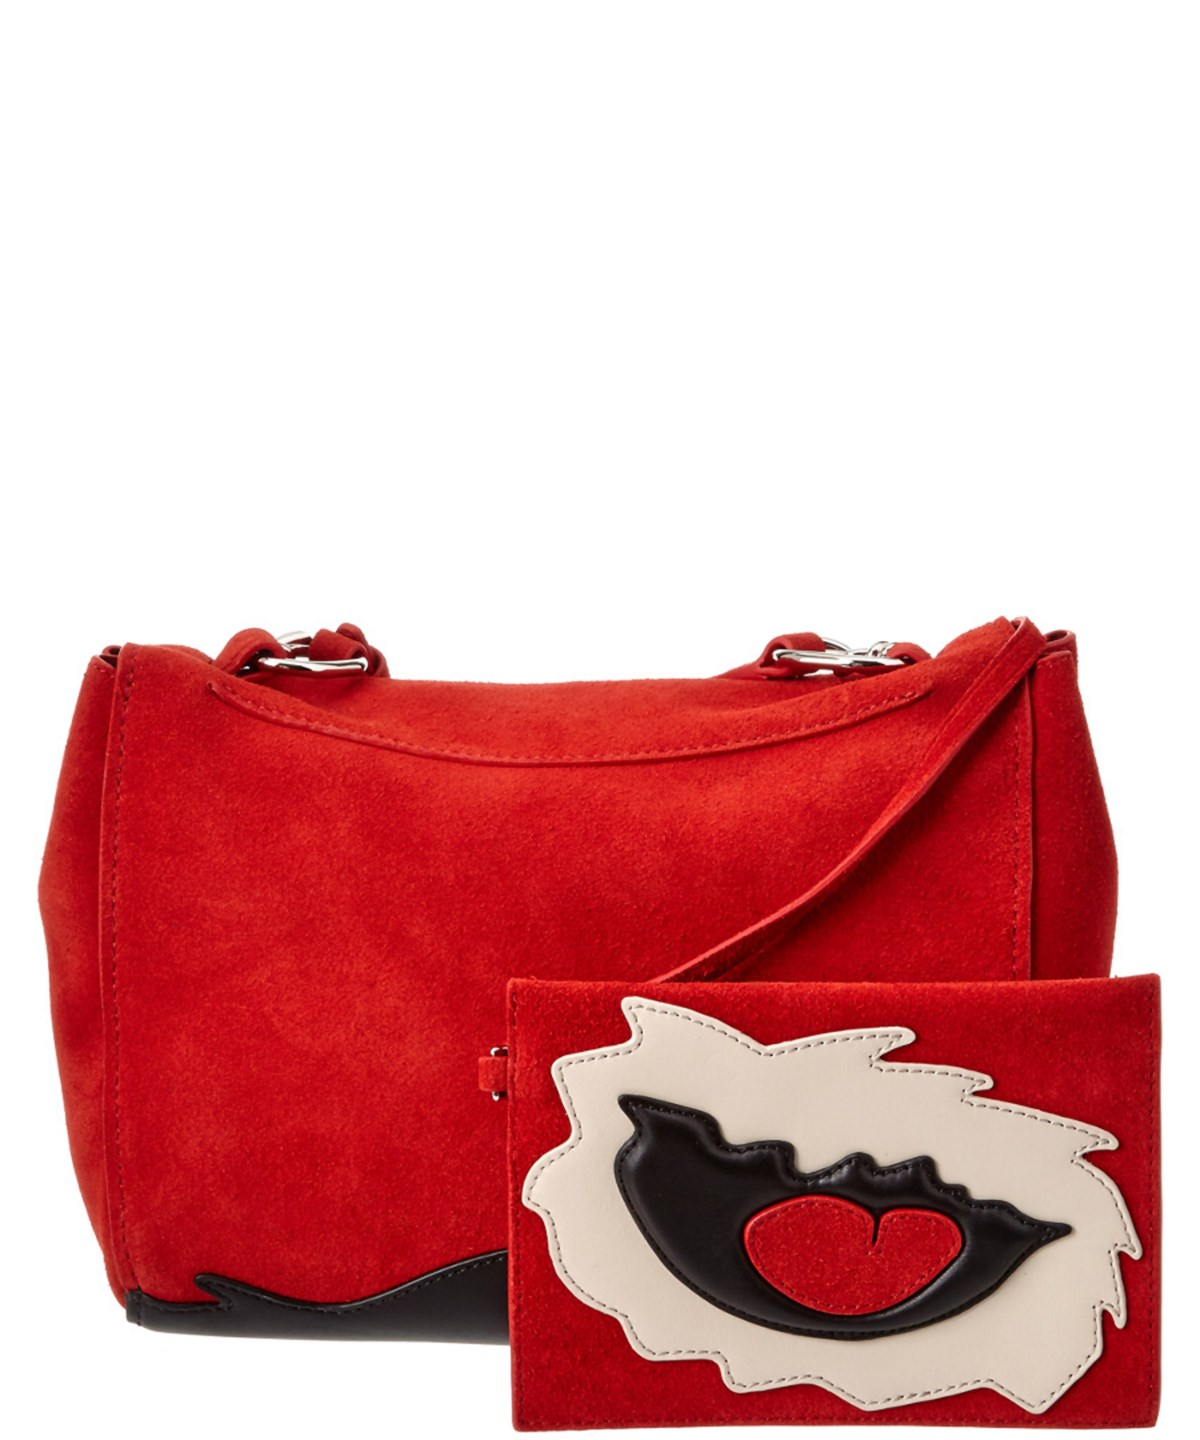 3.1 Phillip Lim Ames Patchwork Flap Suede Crossbody In Red ... 50ffc114d